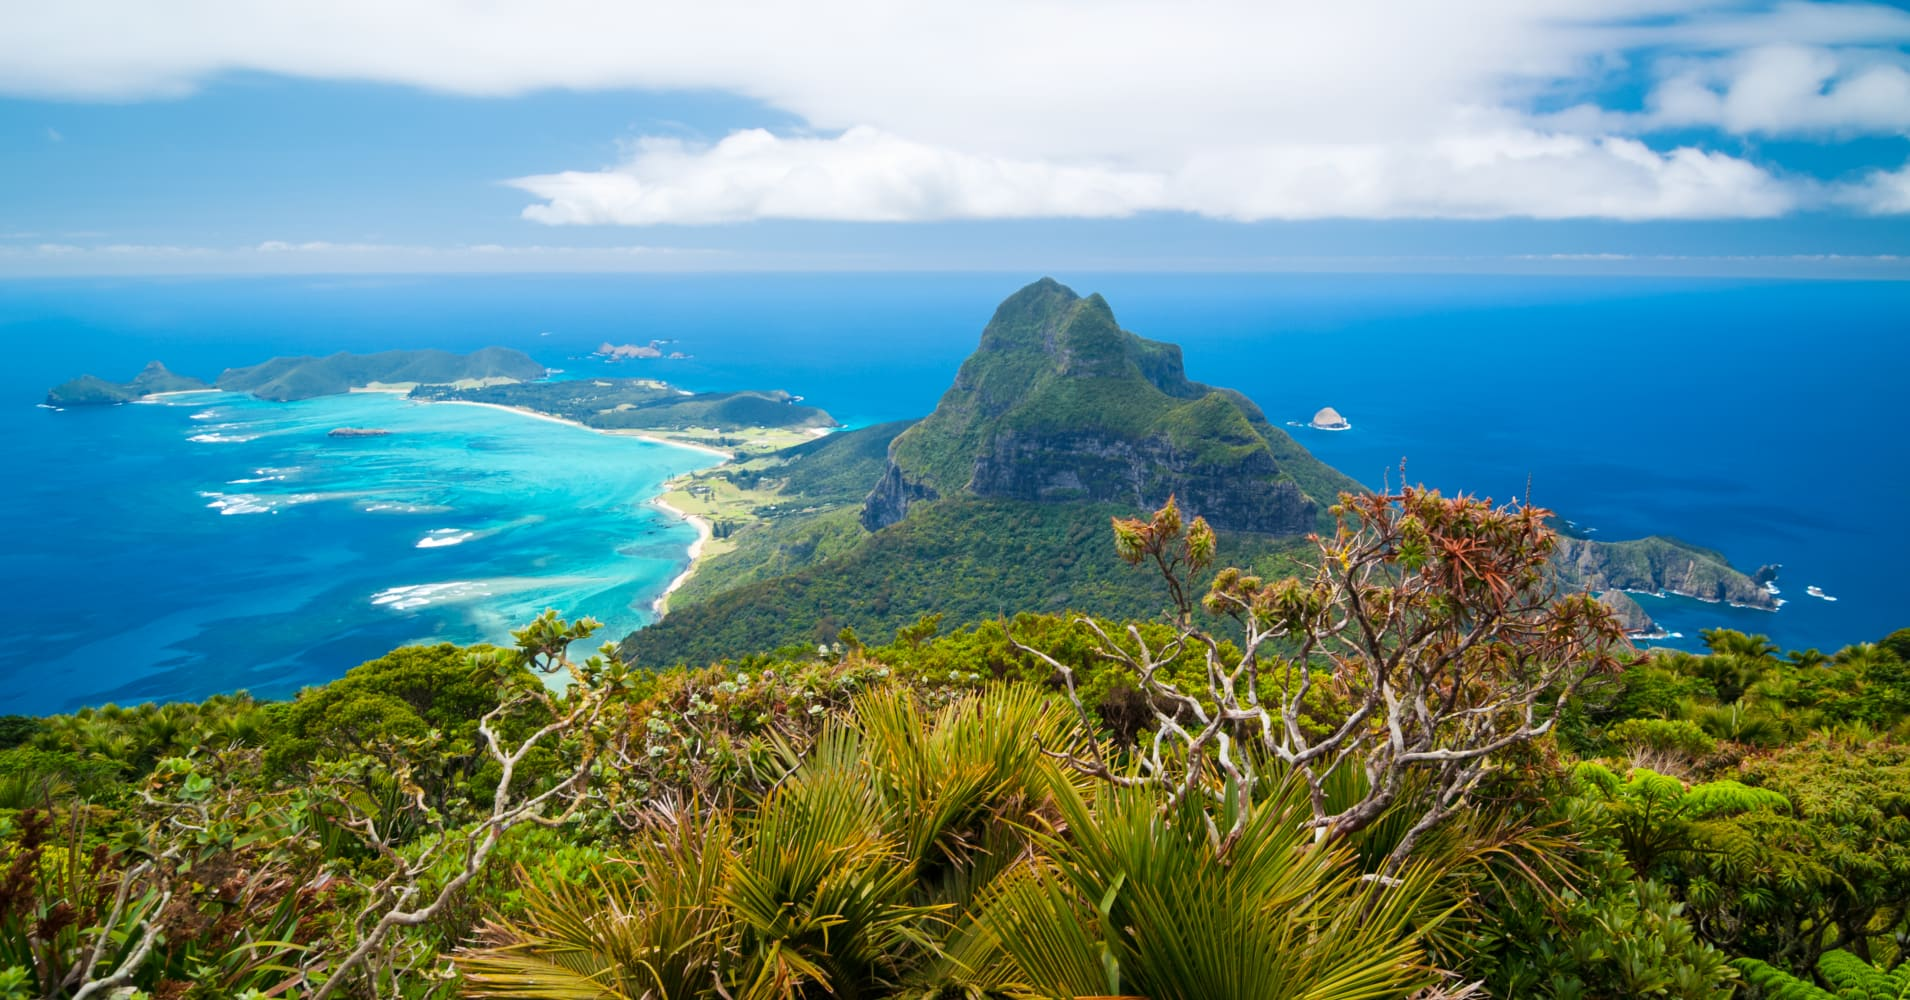 This gorgeous island in the Tasman Sea only allows 400 visitors per night: Take a look